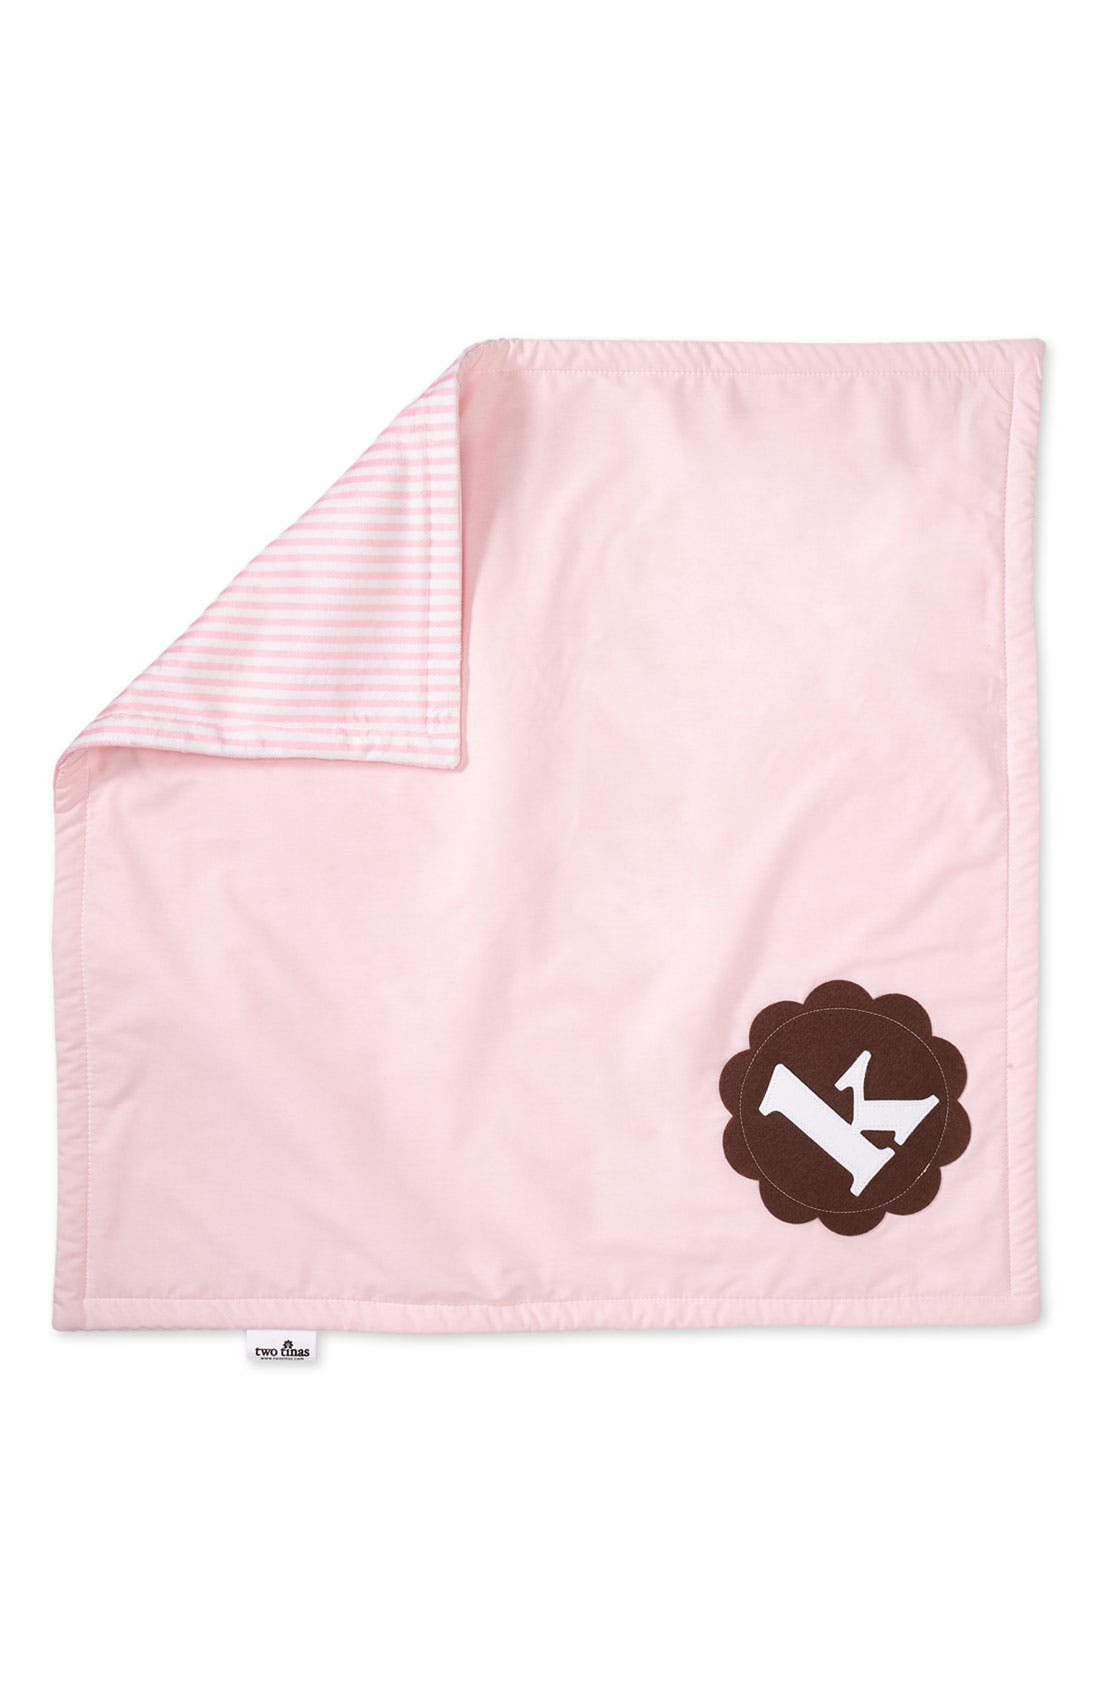 Alternate Image 1 Selected - Two Tinas Initial Blanket